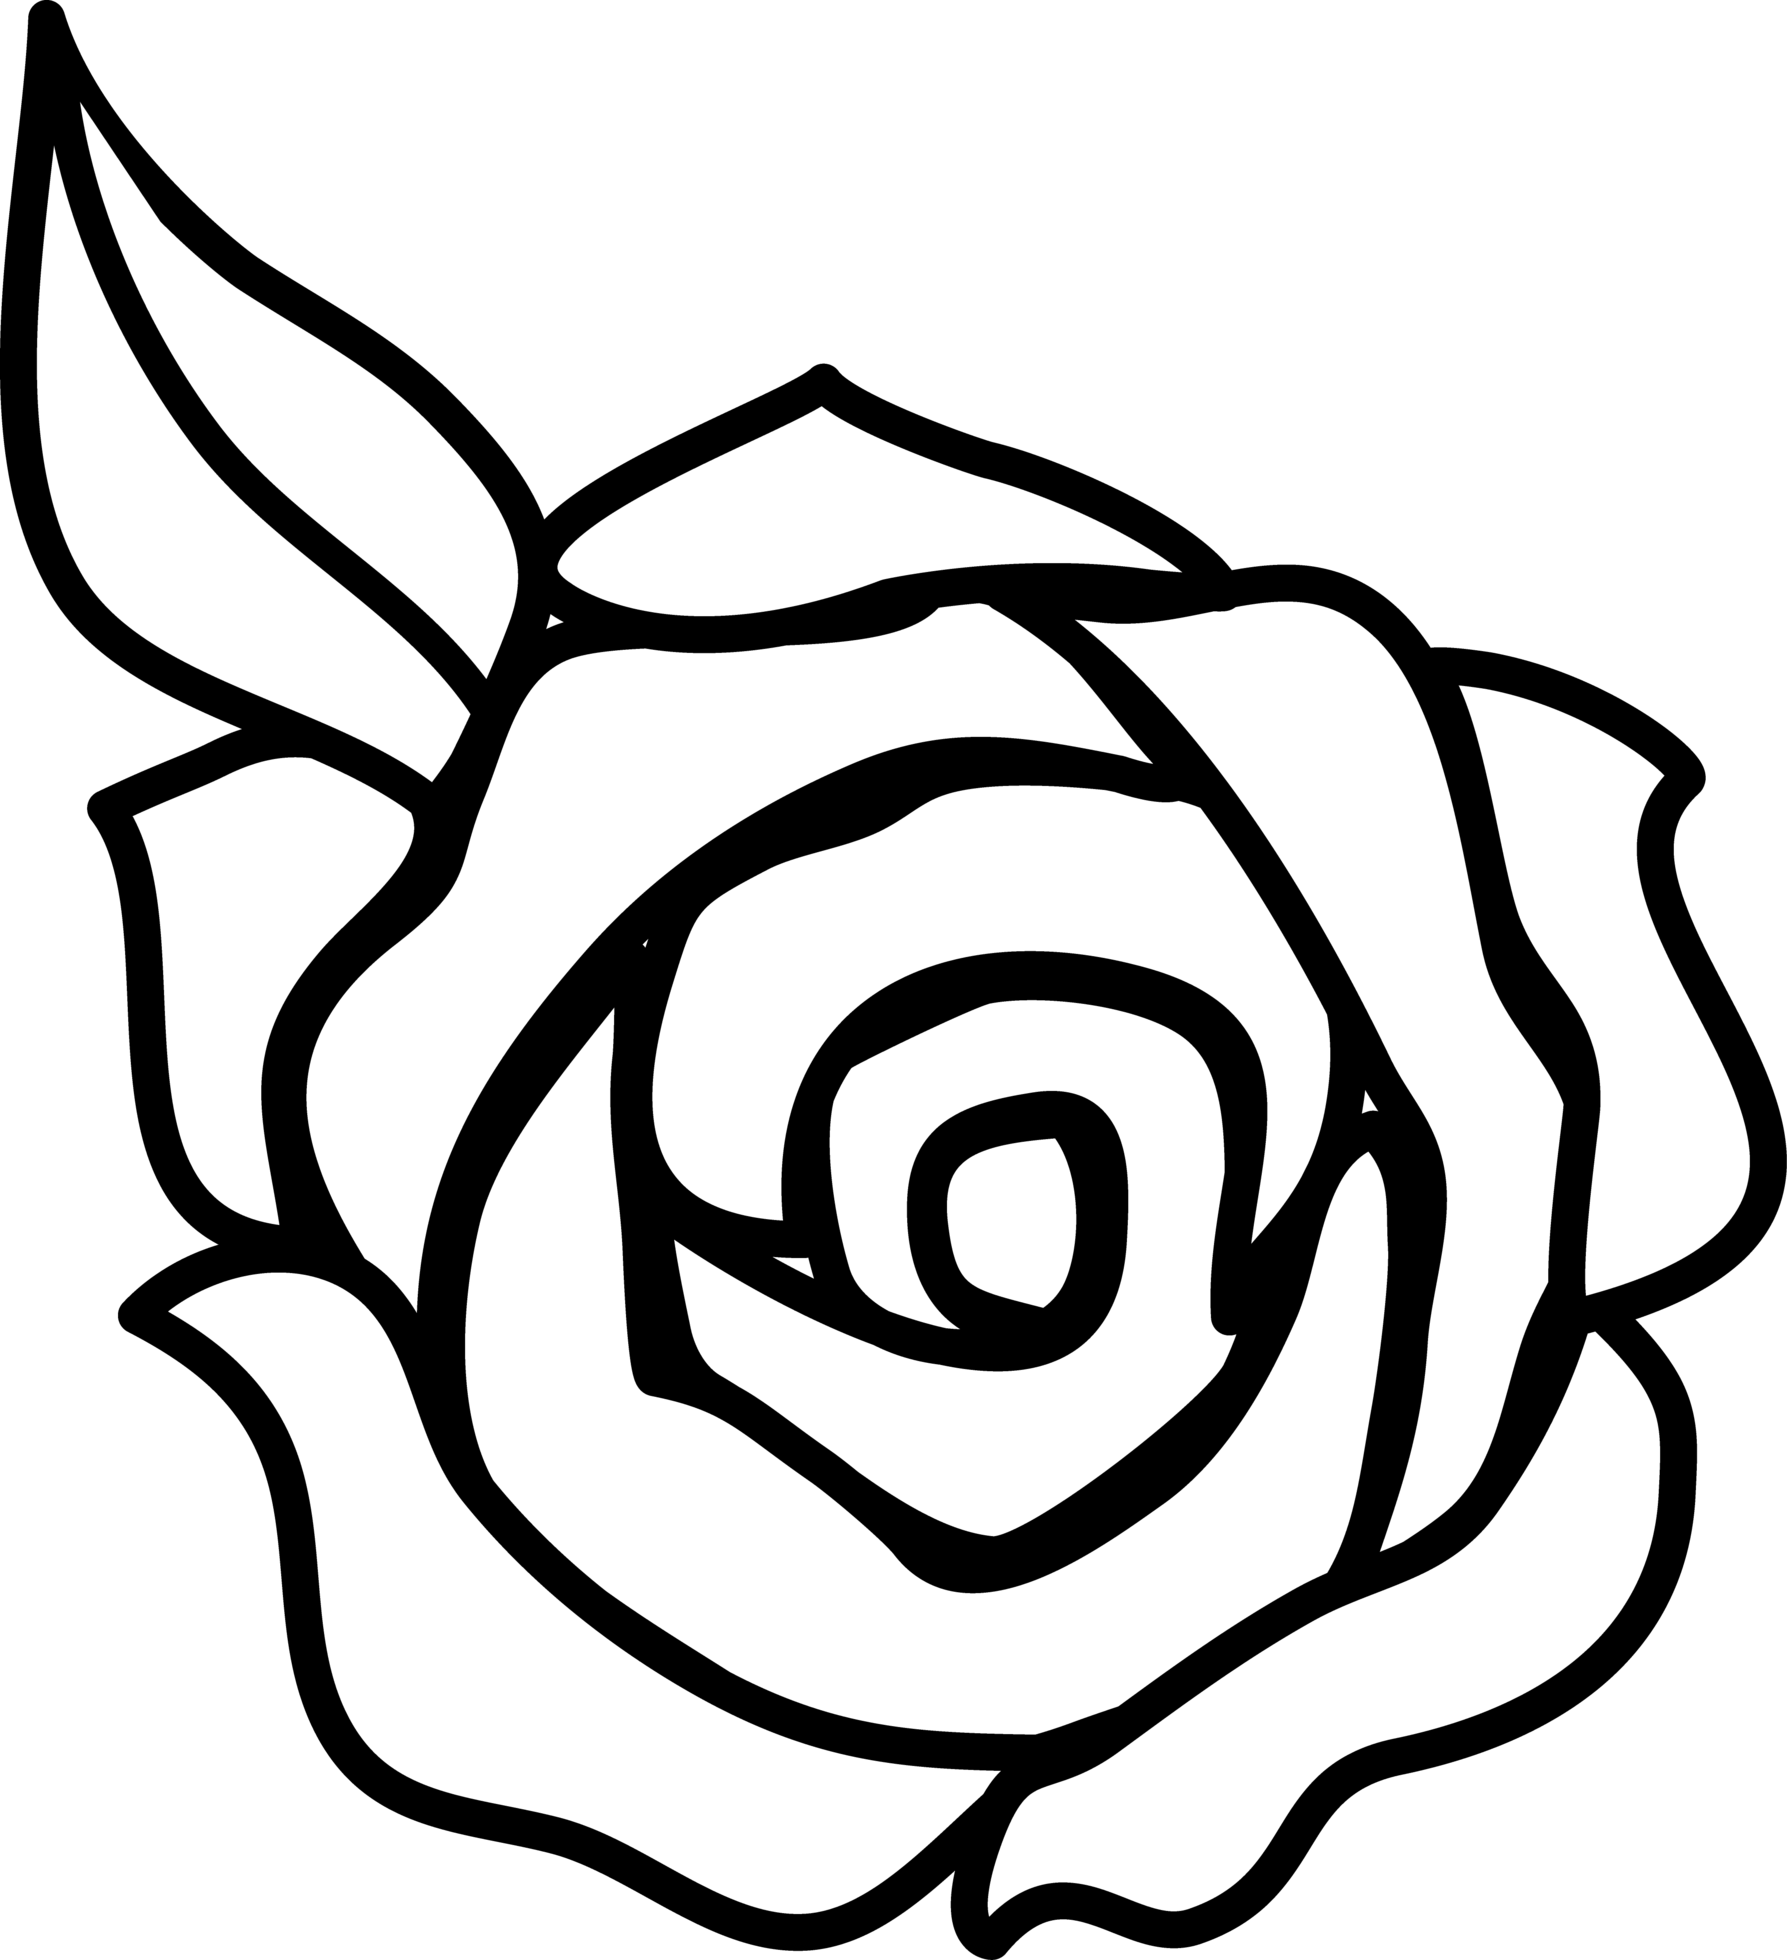 black and white flowers drawing at getdrawings com free for rh getdrawings com flower clipart black and white flower black and white clip art free